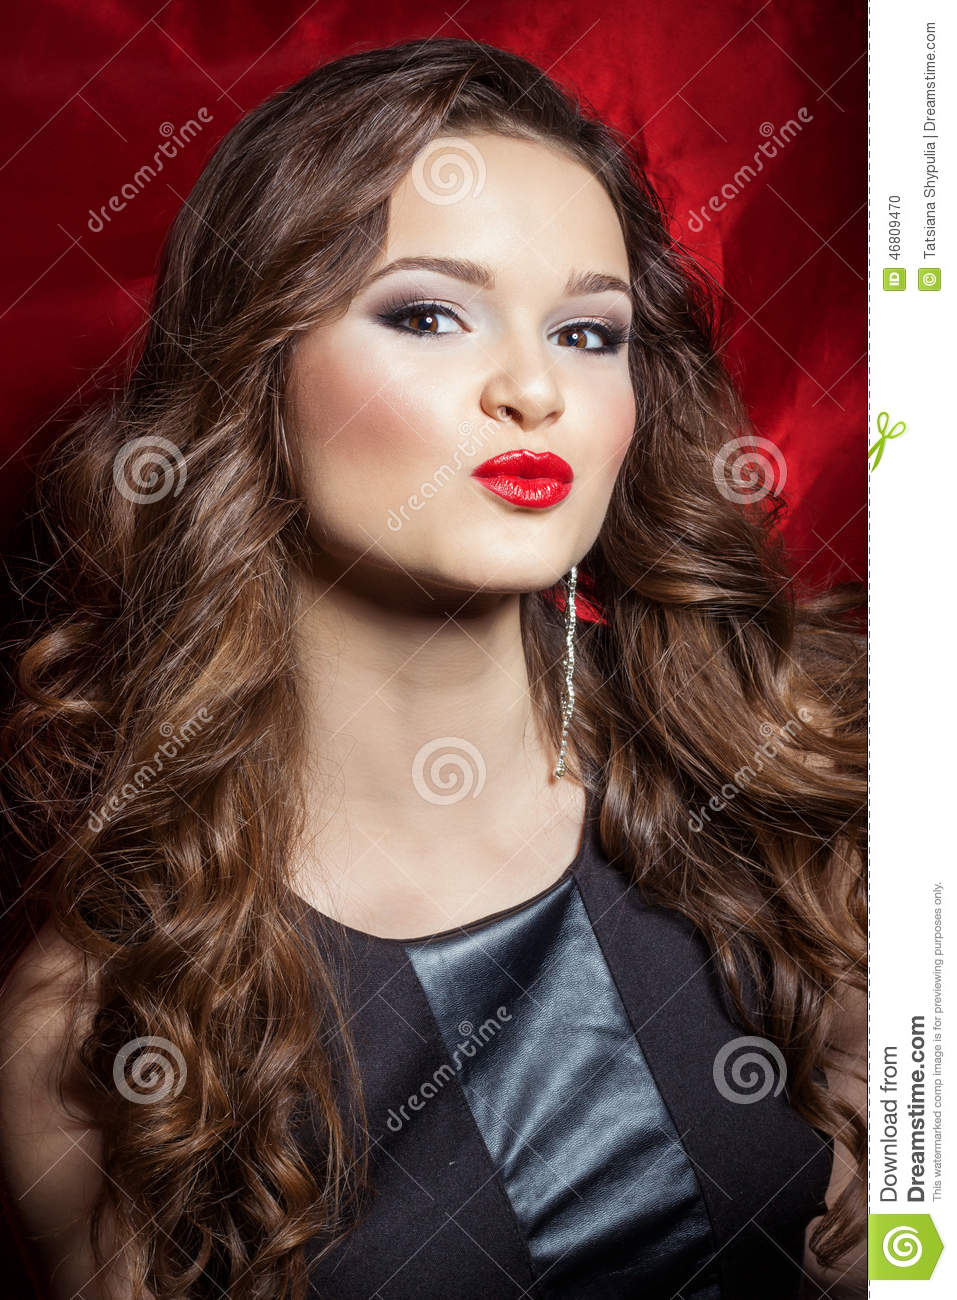 Portrait of a beautiful elegant girl brunette with long hair in evening dress with bright festive makeup and red lipstick